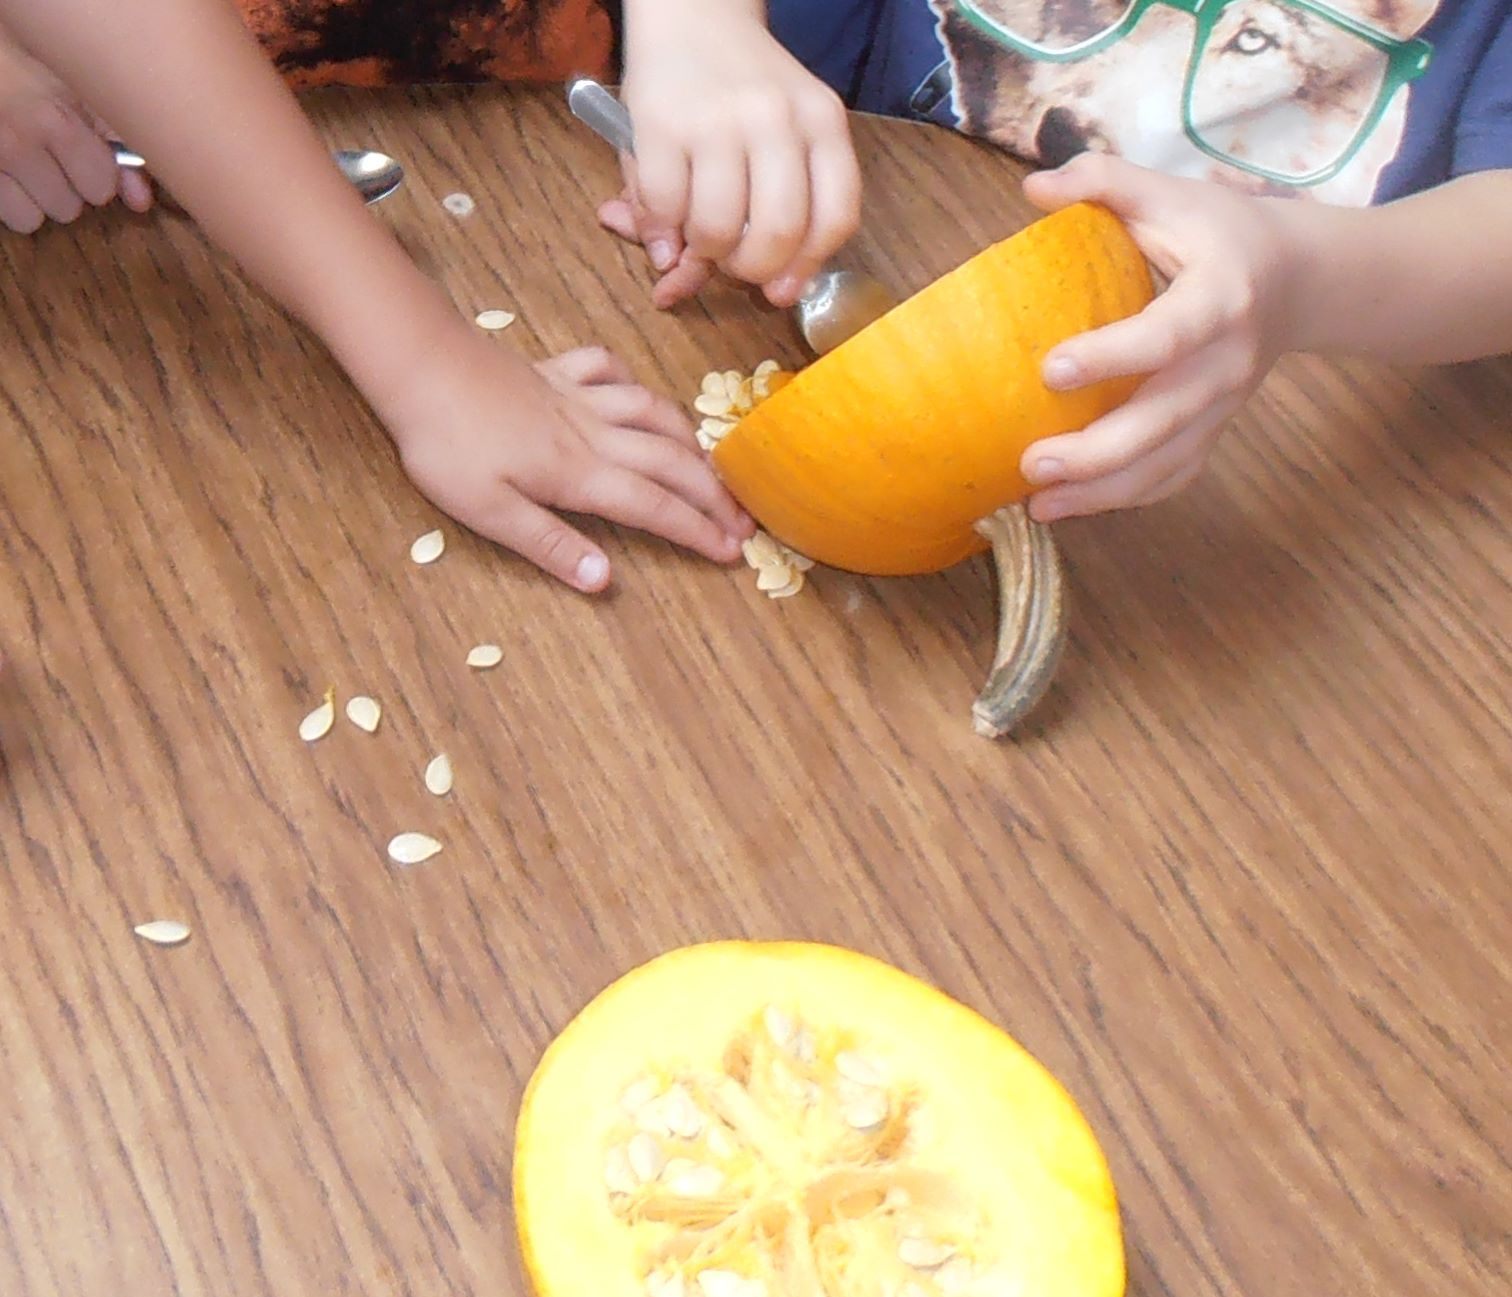 how to cook pumpkin seeds from scratch